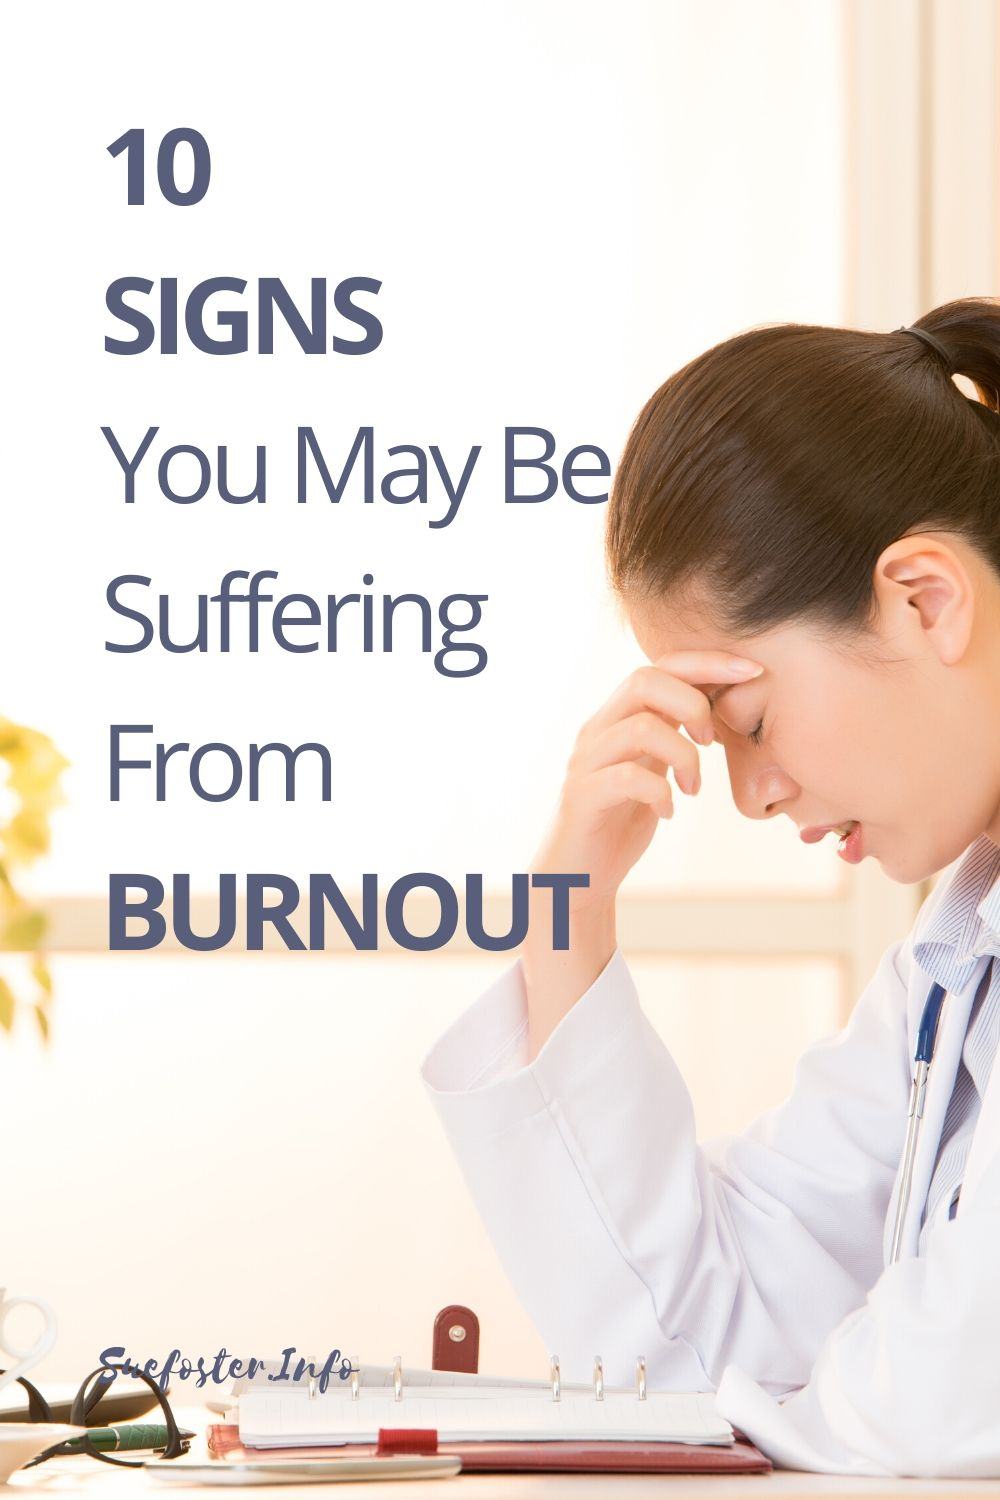 Burnouts are becoming an increasingly common occurrence in modern society. What are the Symptoms of Burnout?